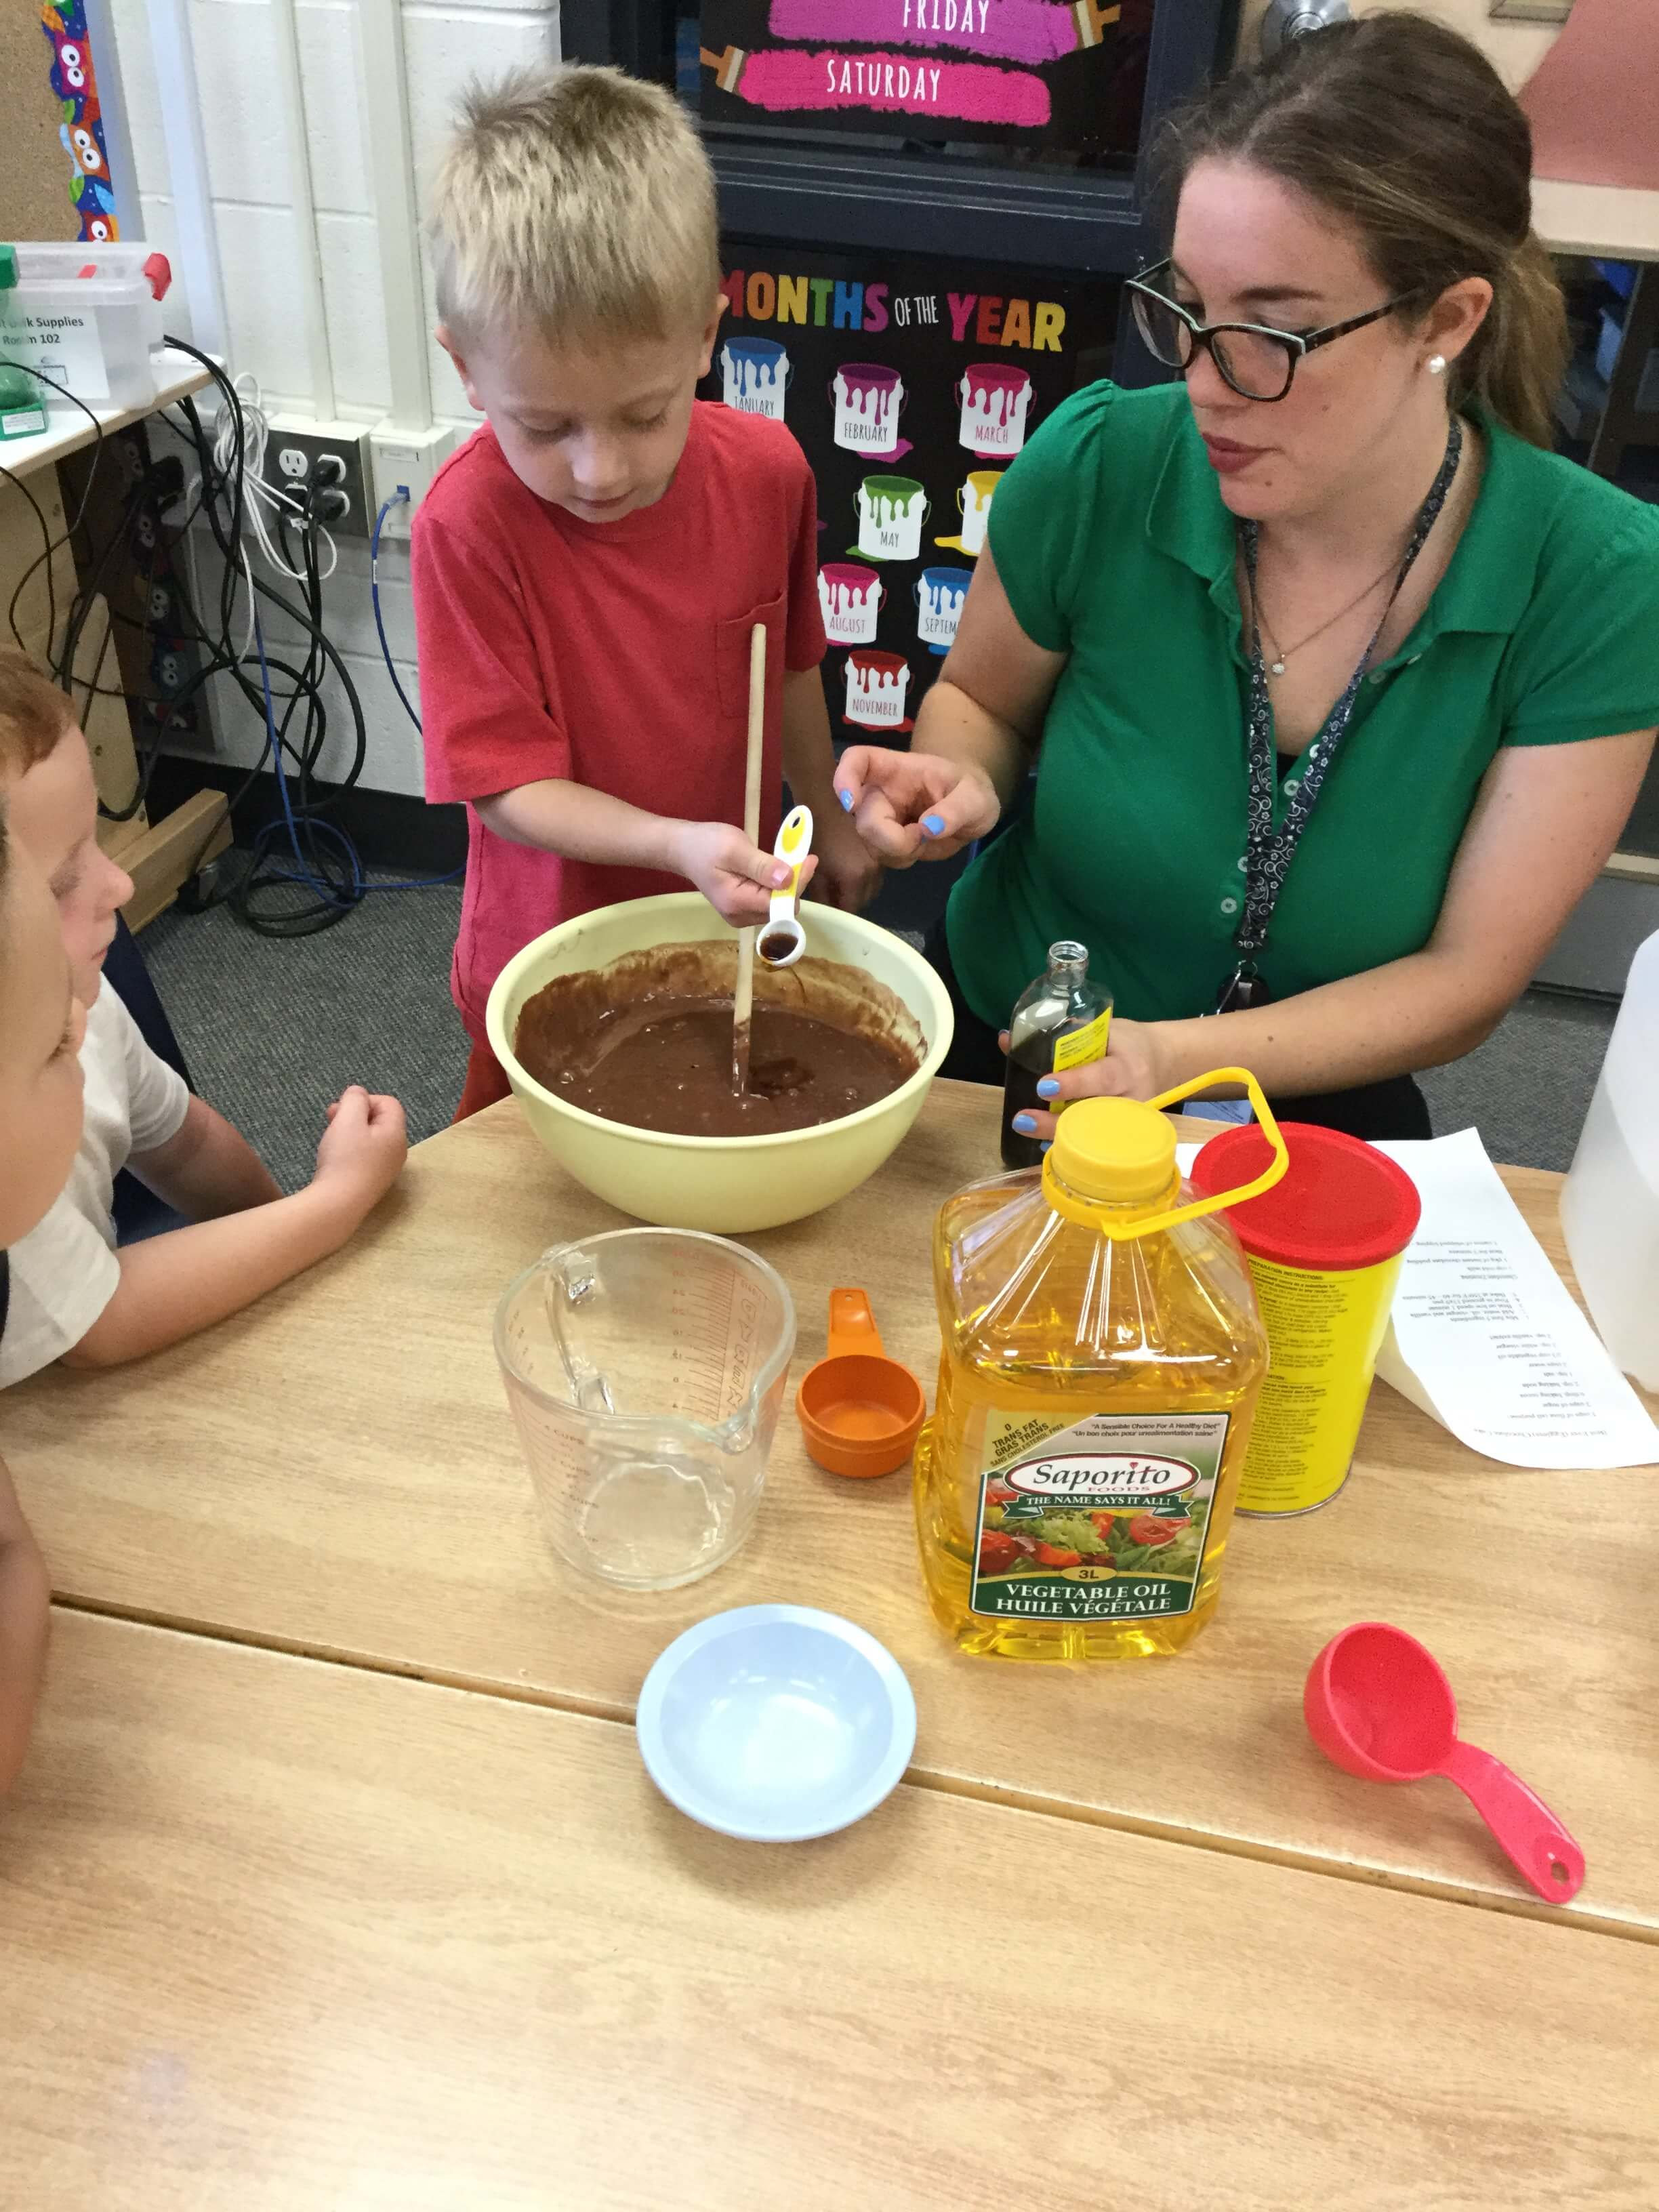 educator mixing batter with children